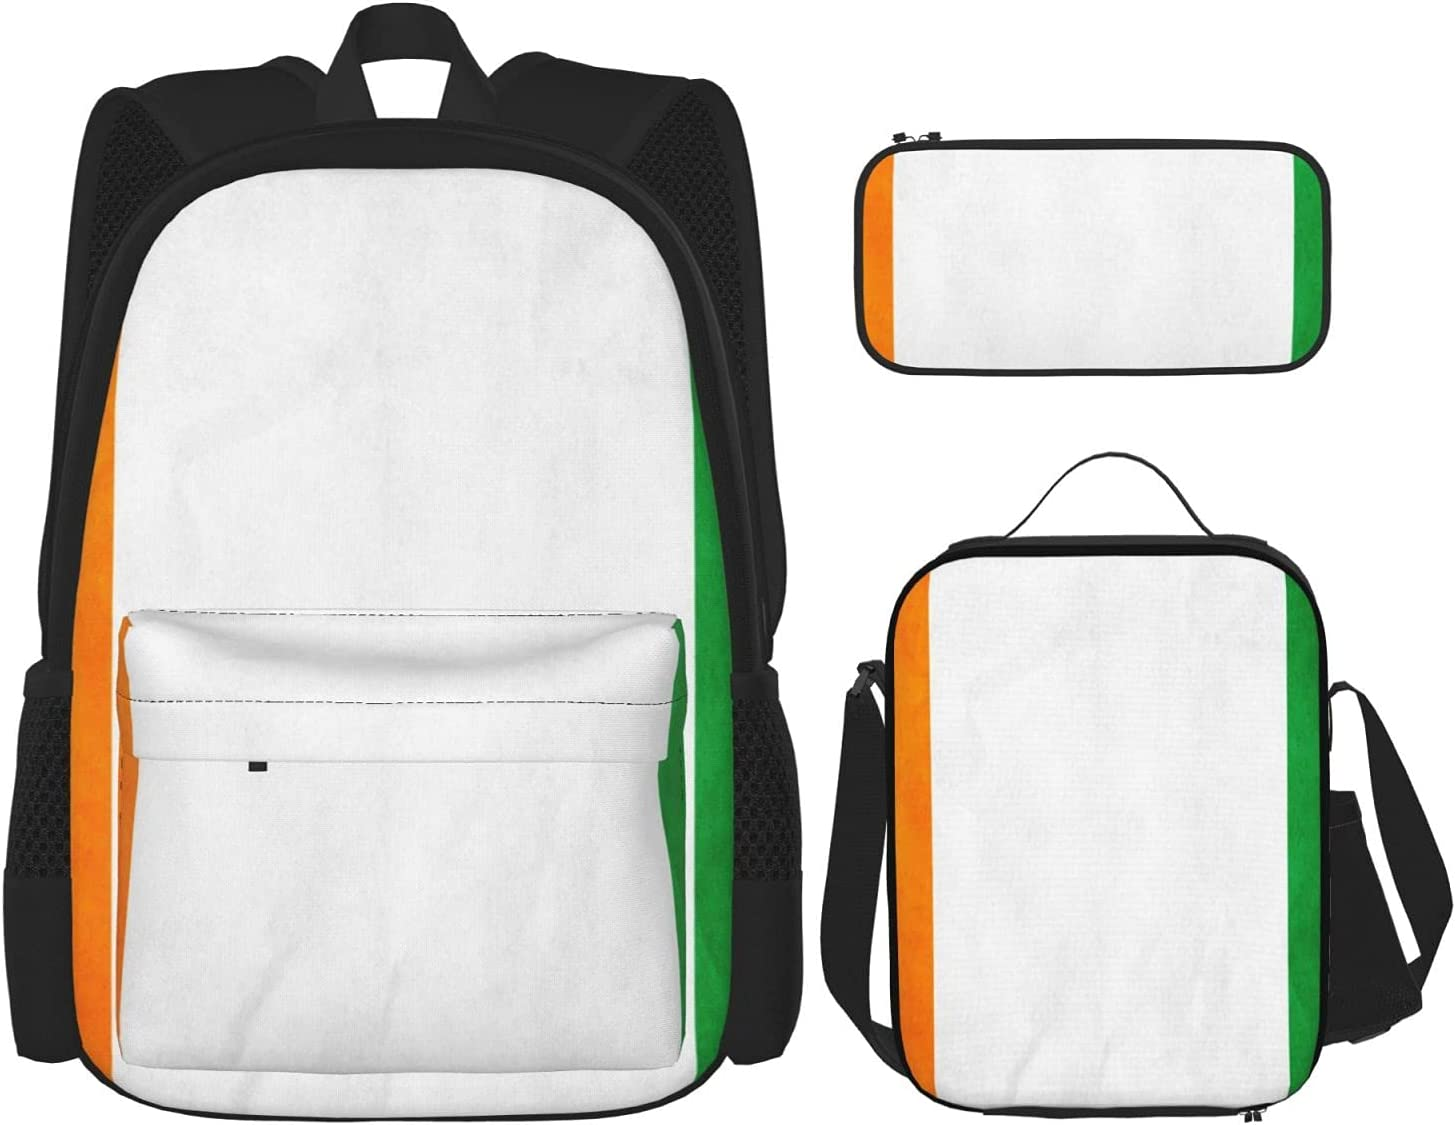 Flag Max 65% OFF Of Ivory Coast Max 87% OFF Youth School Pencil Combi Lunch Bag Case